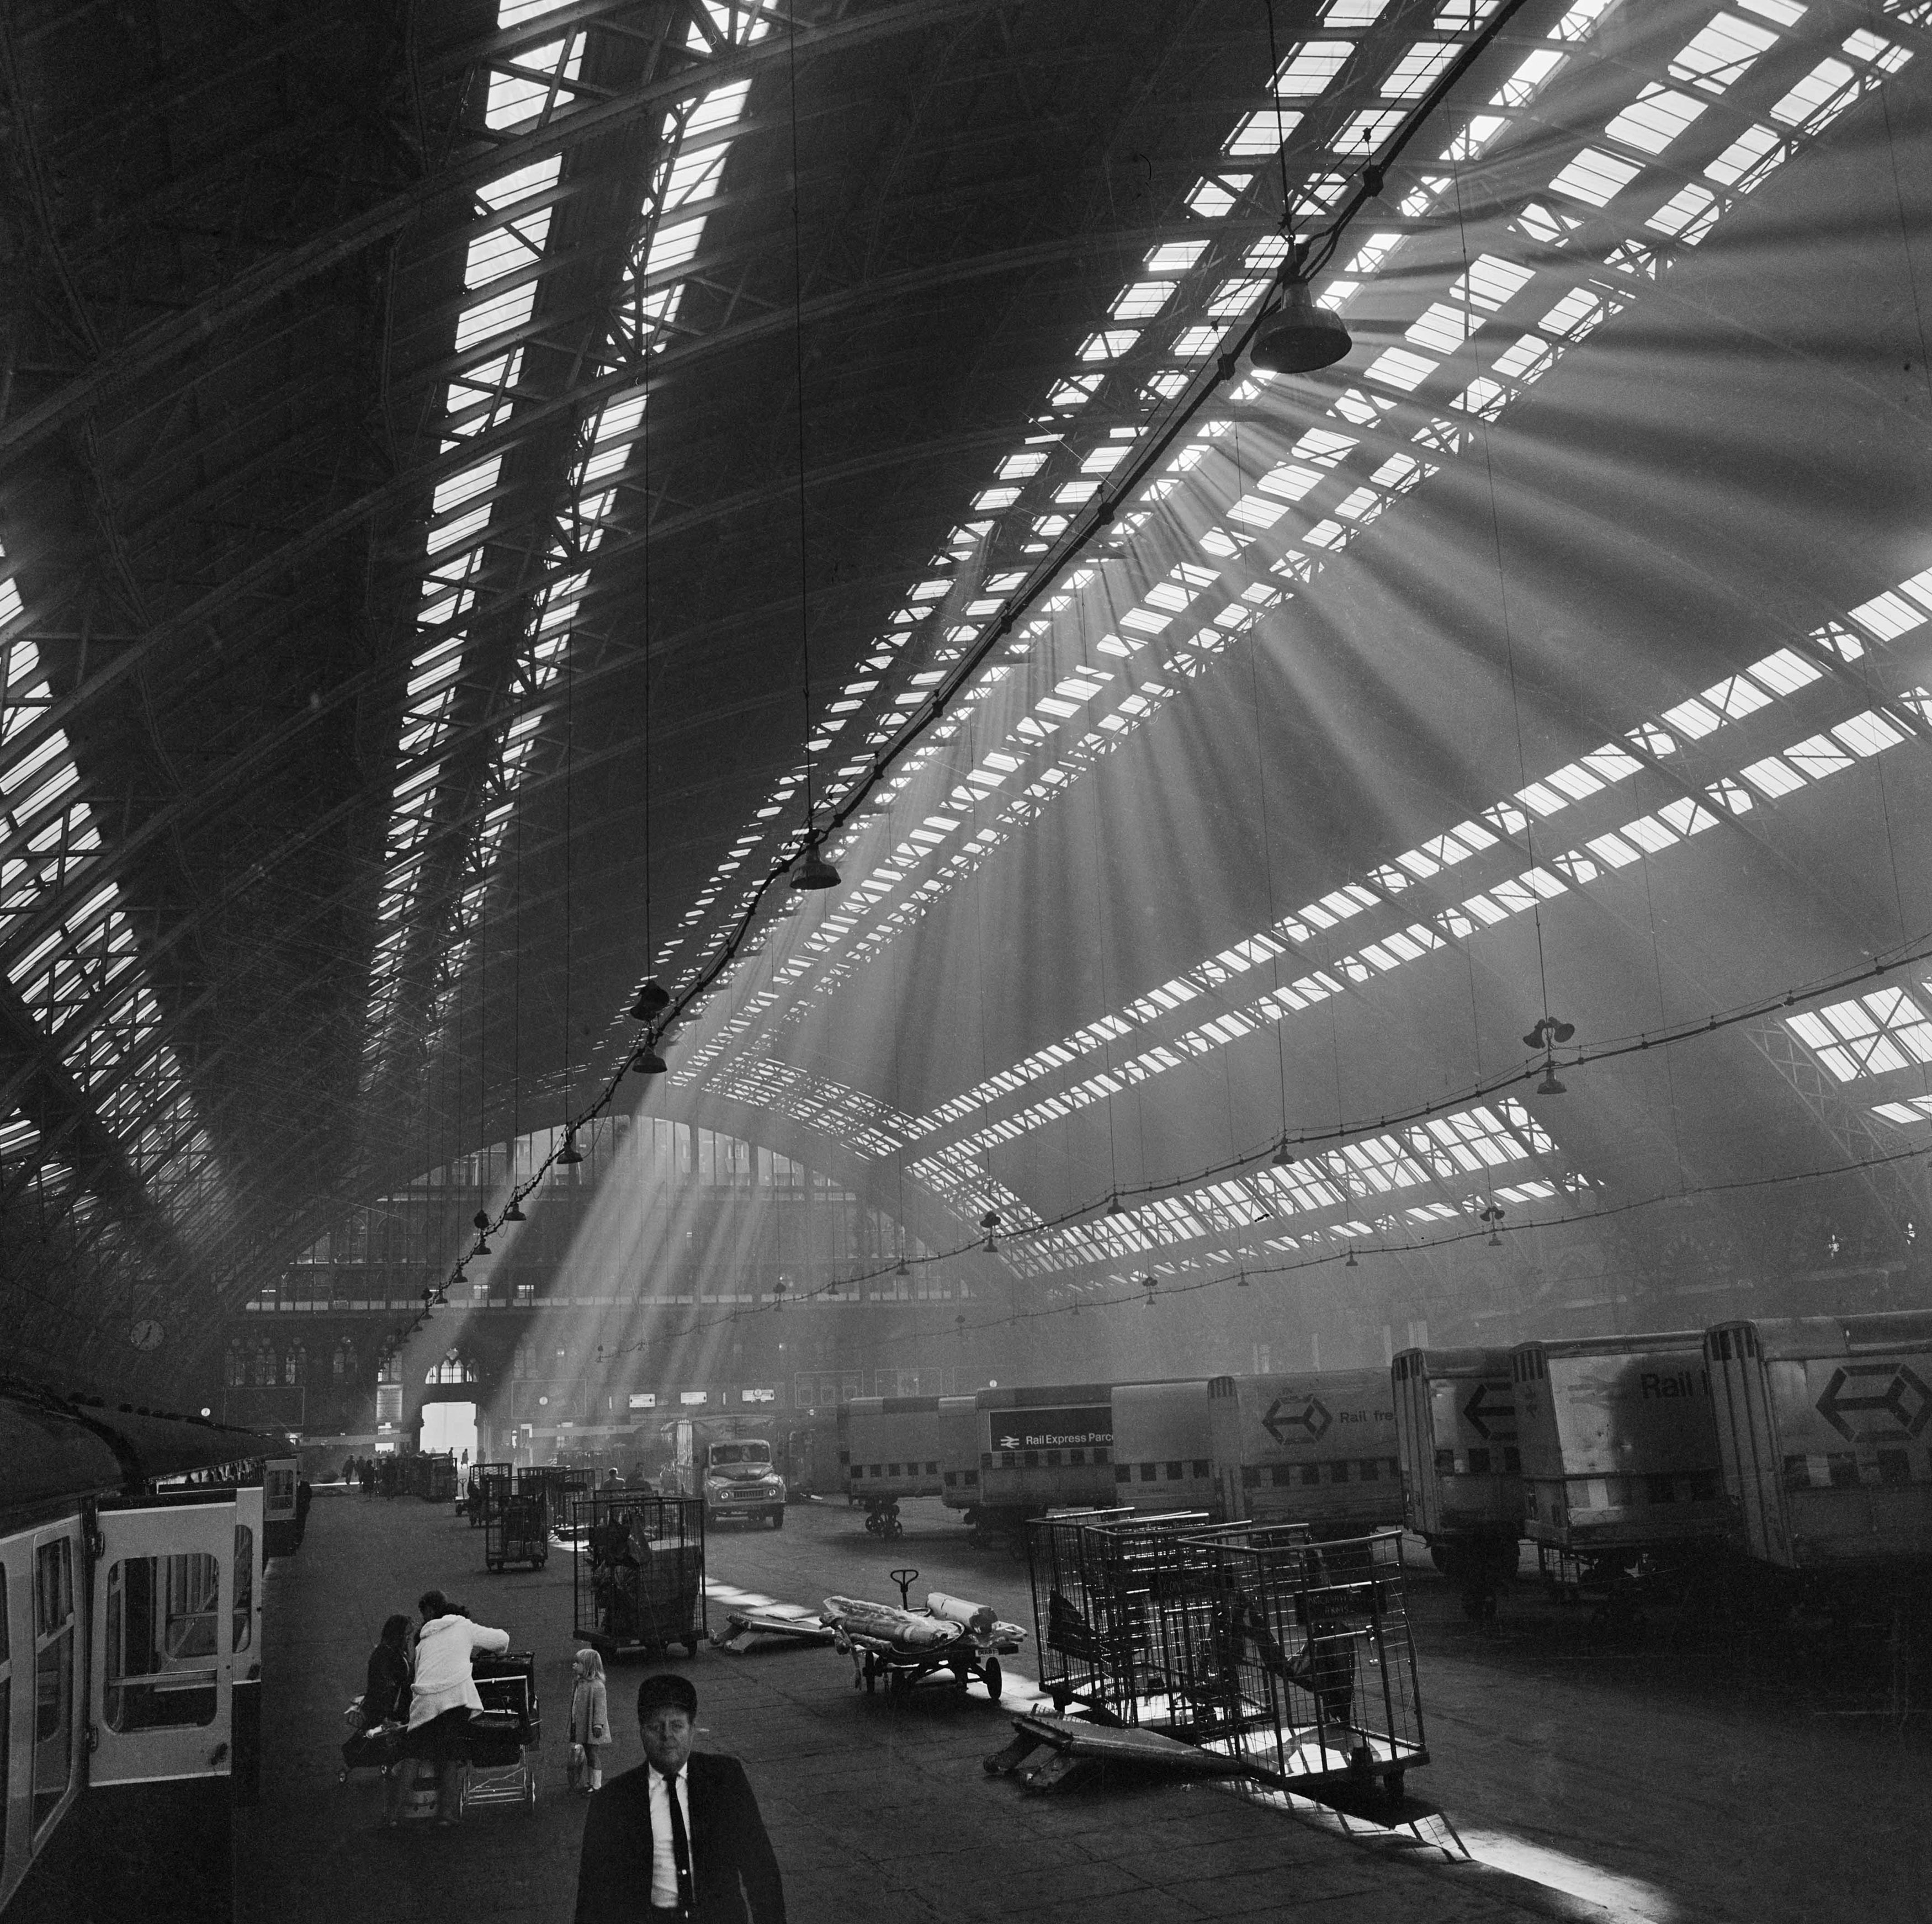 a black and white photo of railway station with shafts of light coming through the roof